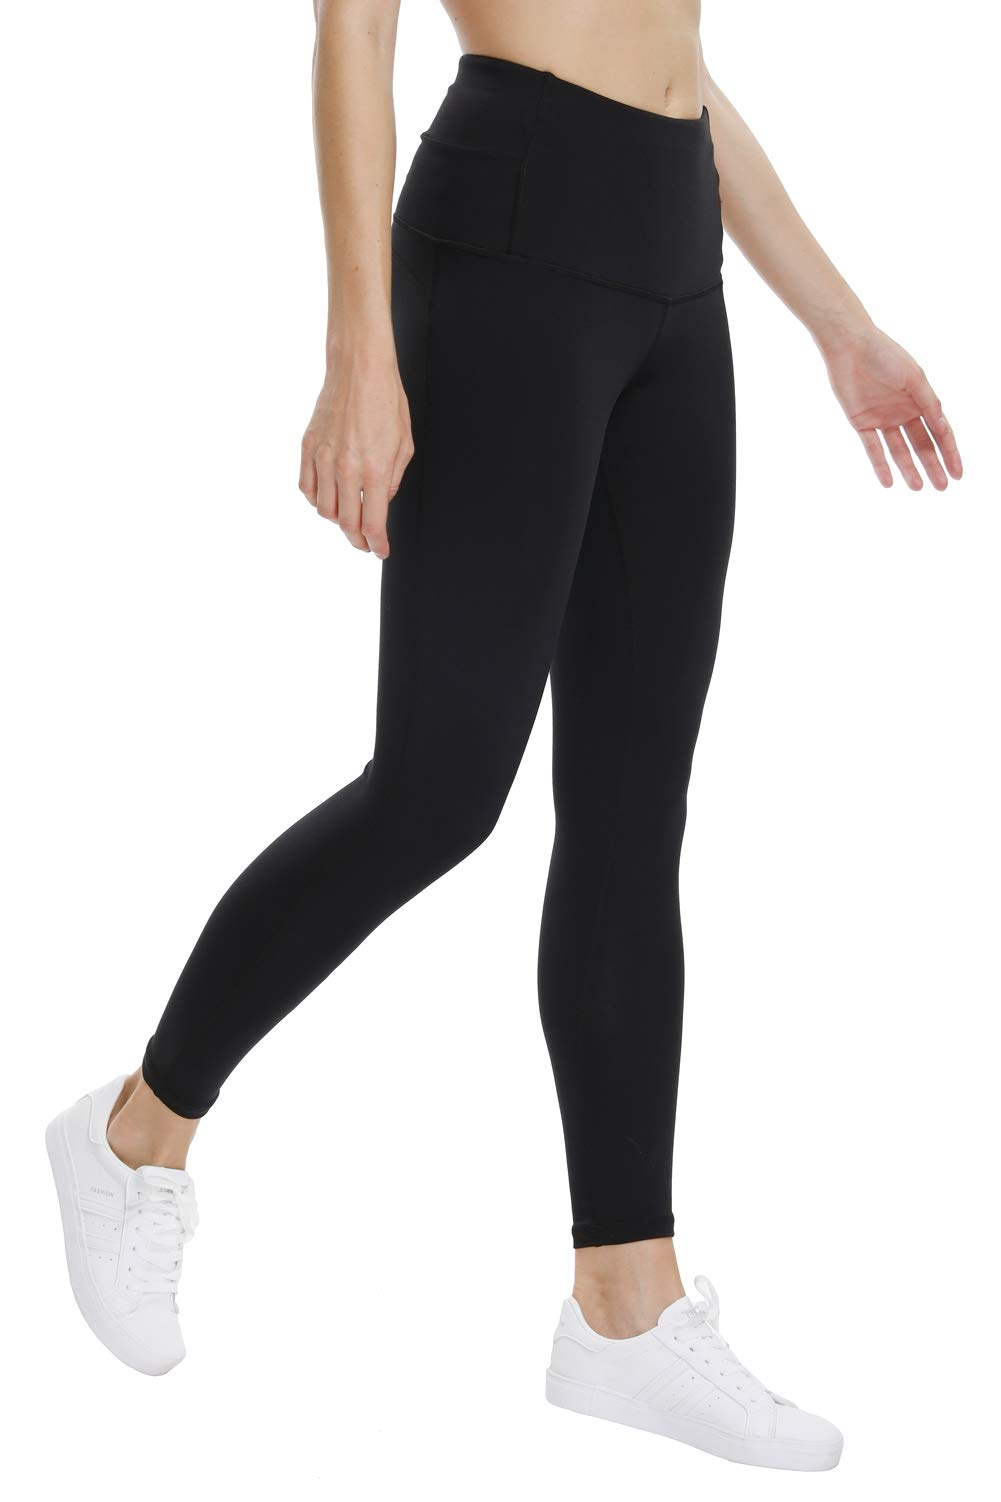 THE GYM PEOPLE High Waist Yoga Pants for Women Tummy Control Running Workout Yoga Capri Leggings with Back Hidden Pocket (Large, 02/Black)